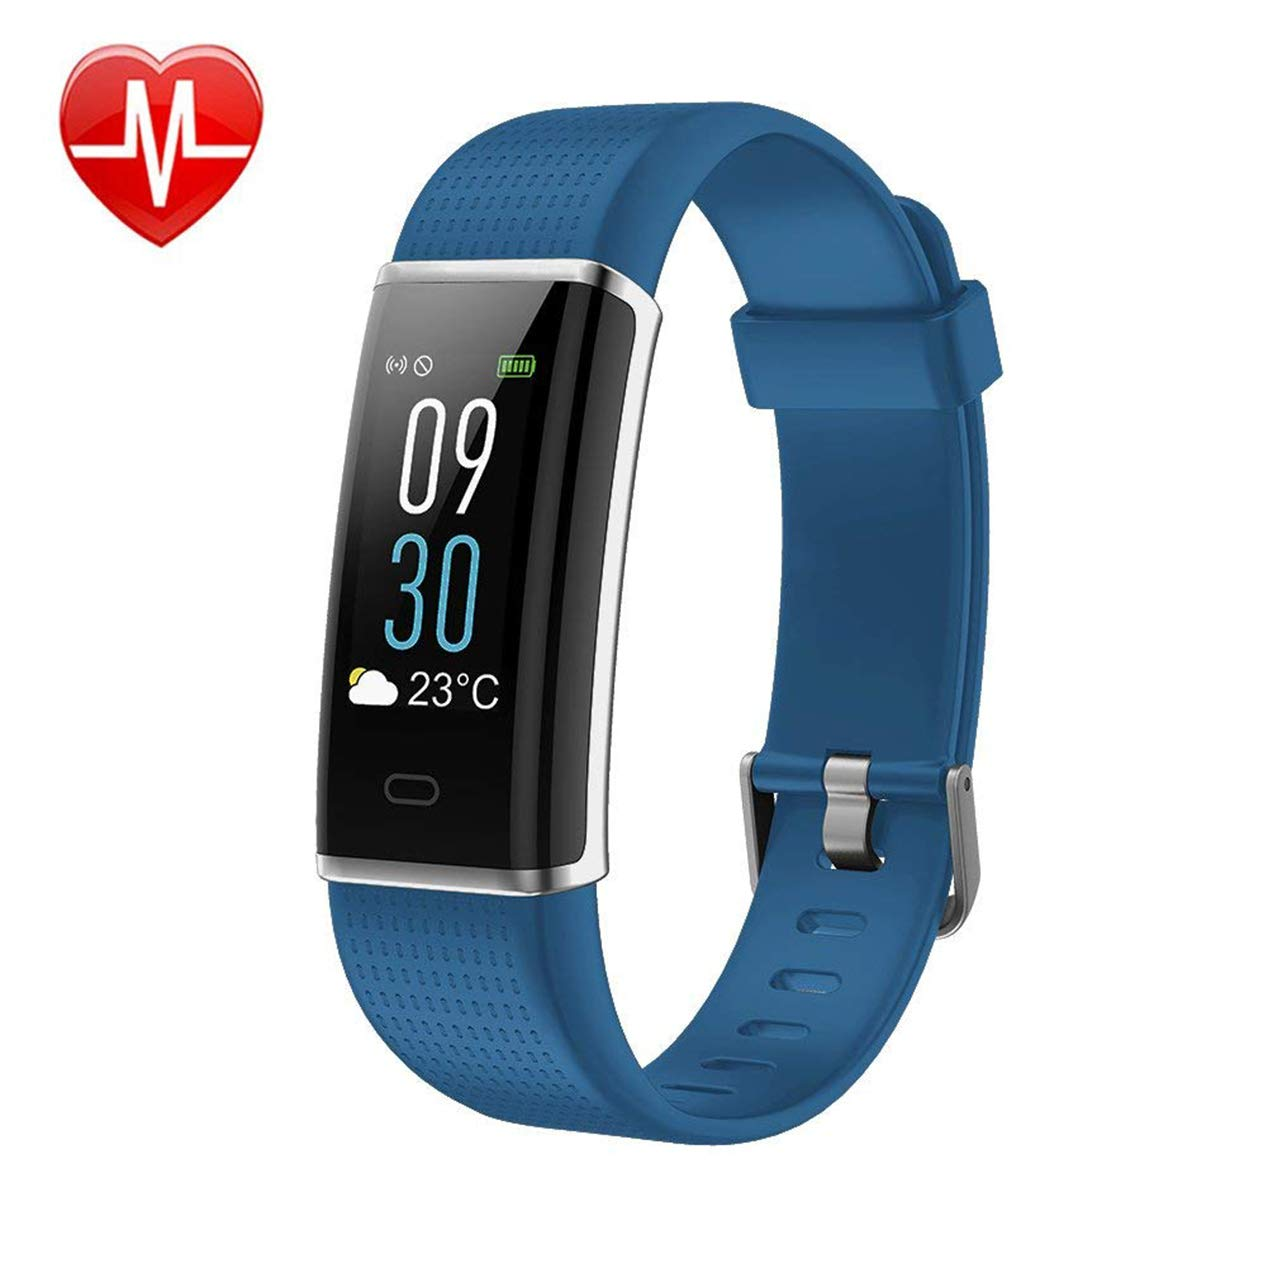 KARSEEN Fitness Tracker, Activity Tracker Fitness Watch Heart Rate Monitor Colorful OLED Screen Smart Watch Sleep Monitor, Step Counter, IP68 Waterproof Pedometer Android&iOS Phone (Blue)